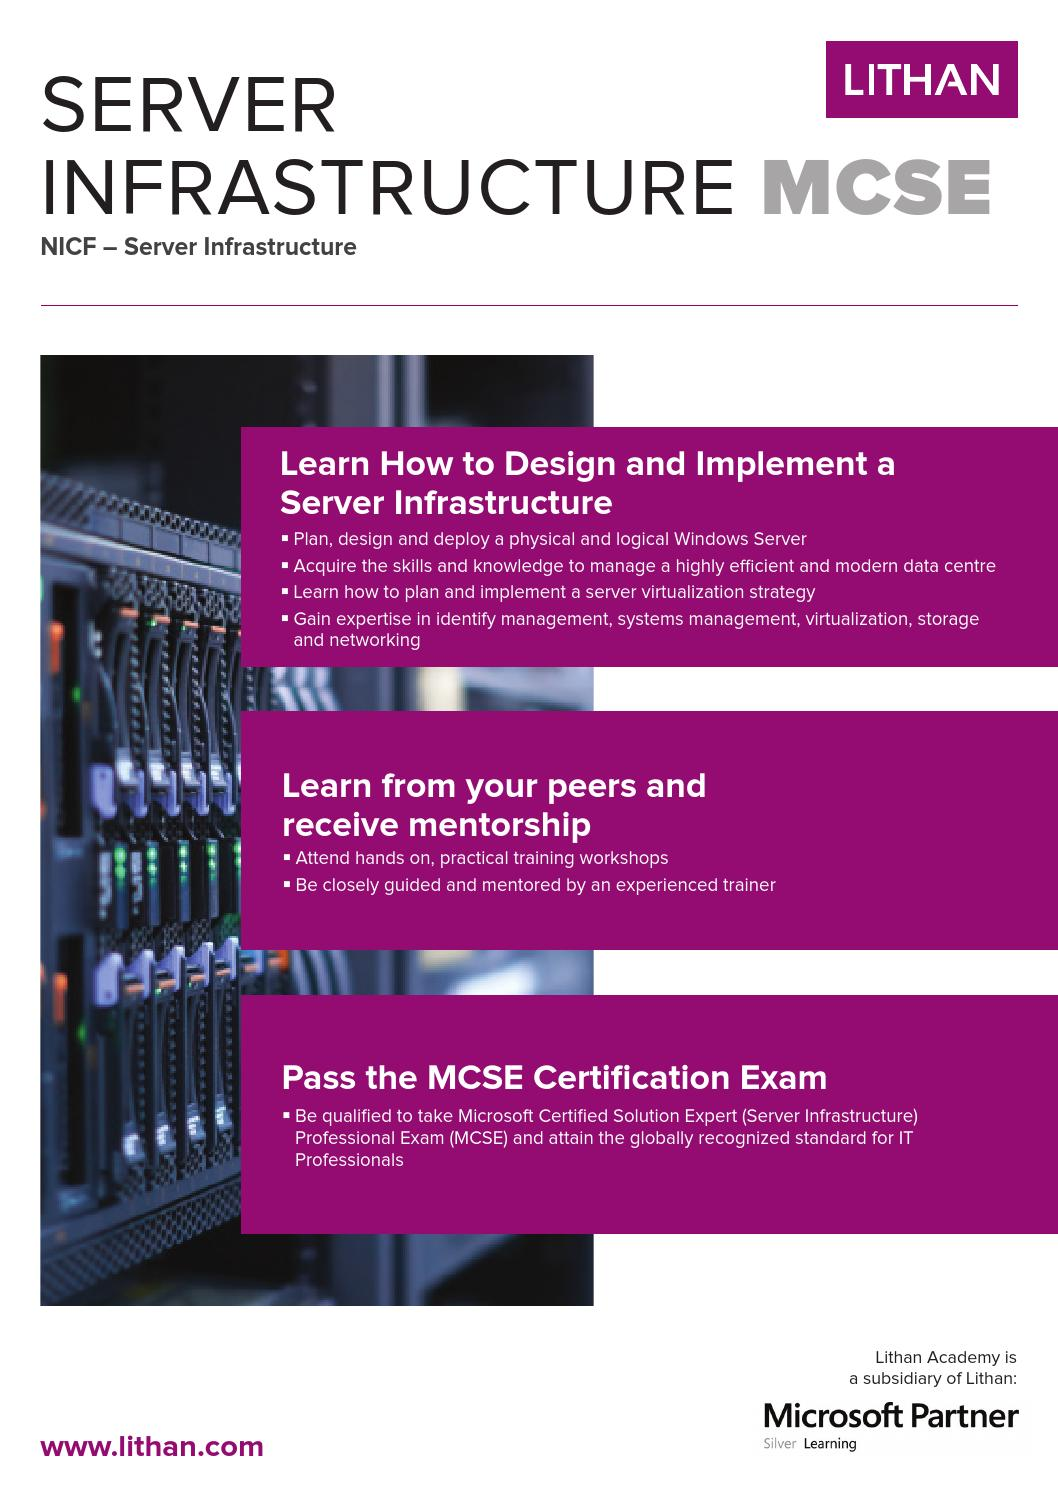 Server Infrastructure Mcse Brochure Sg By Lithan Hall Issuu